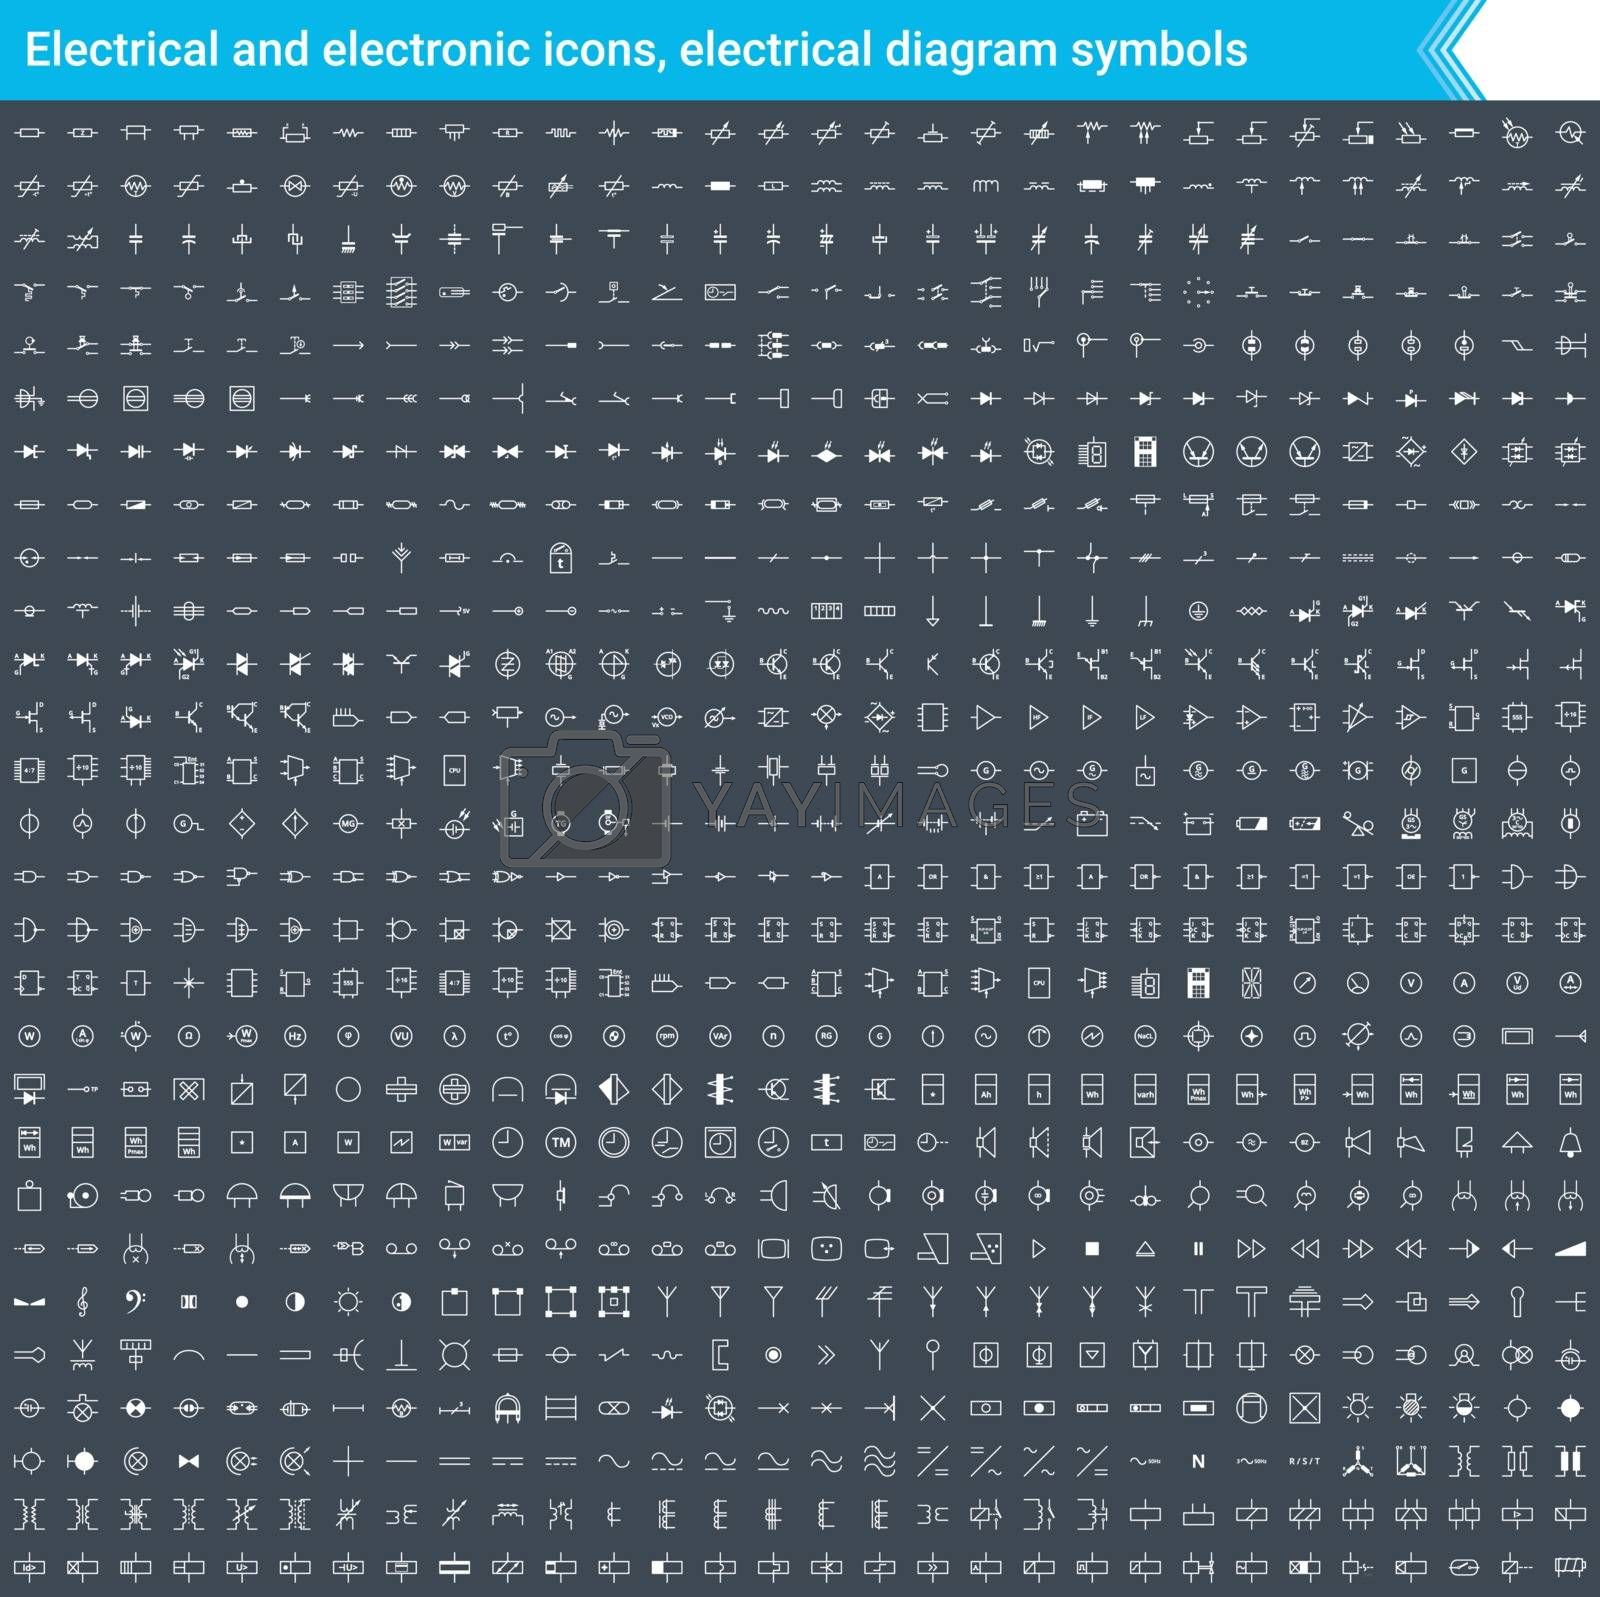 Electrical and electronic icons, electrical diagram symbols. Circuit diagram elements. Stoke, simple and thin vector icons isolated on dark background.